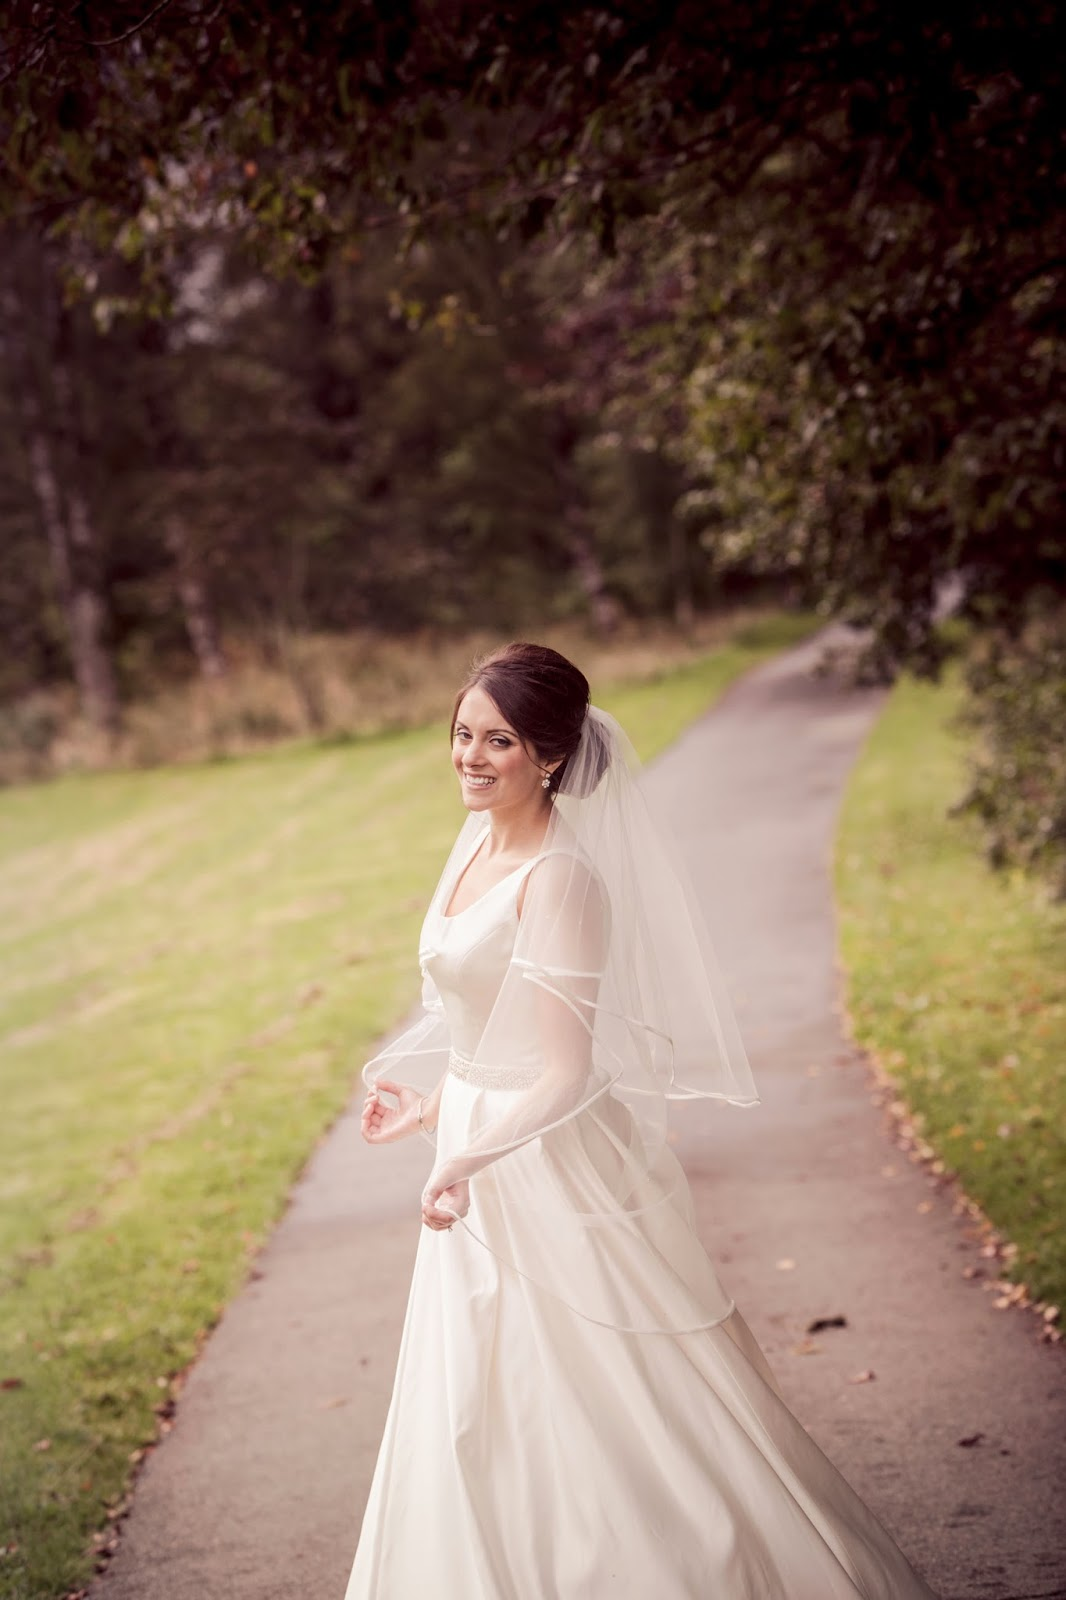 beautiful shot of the bride in her satin gown and veil